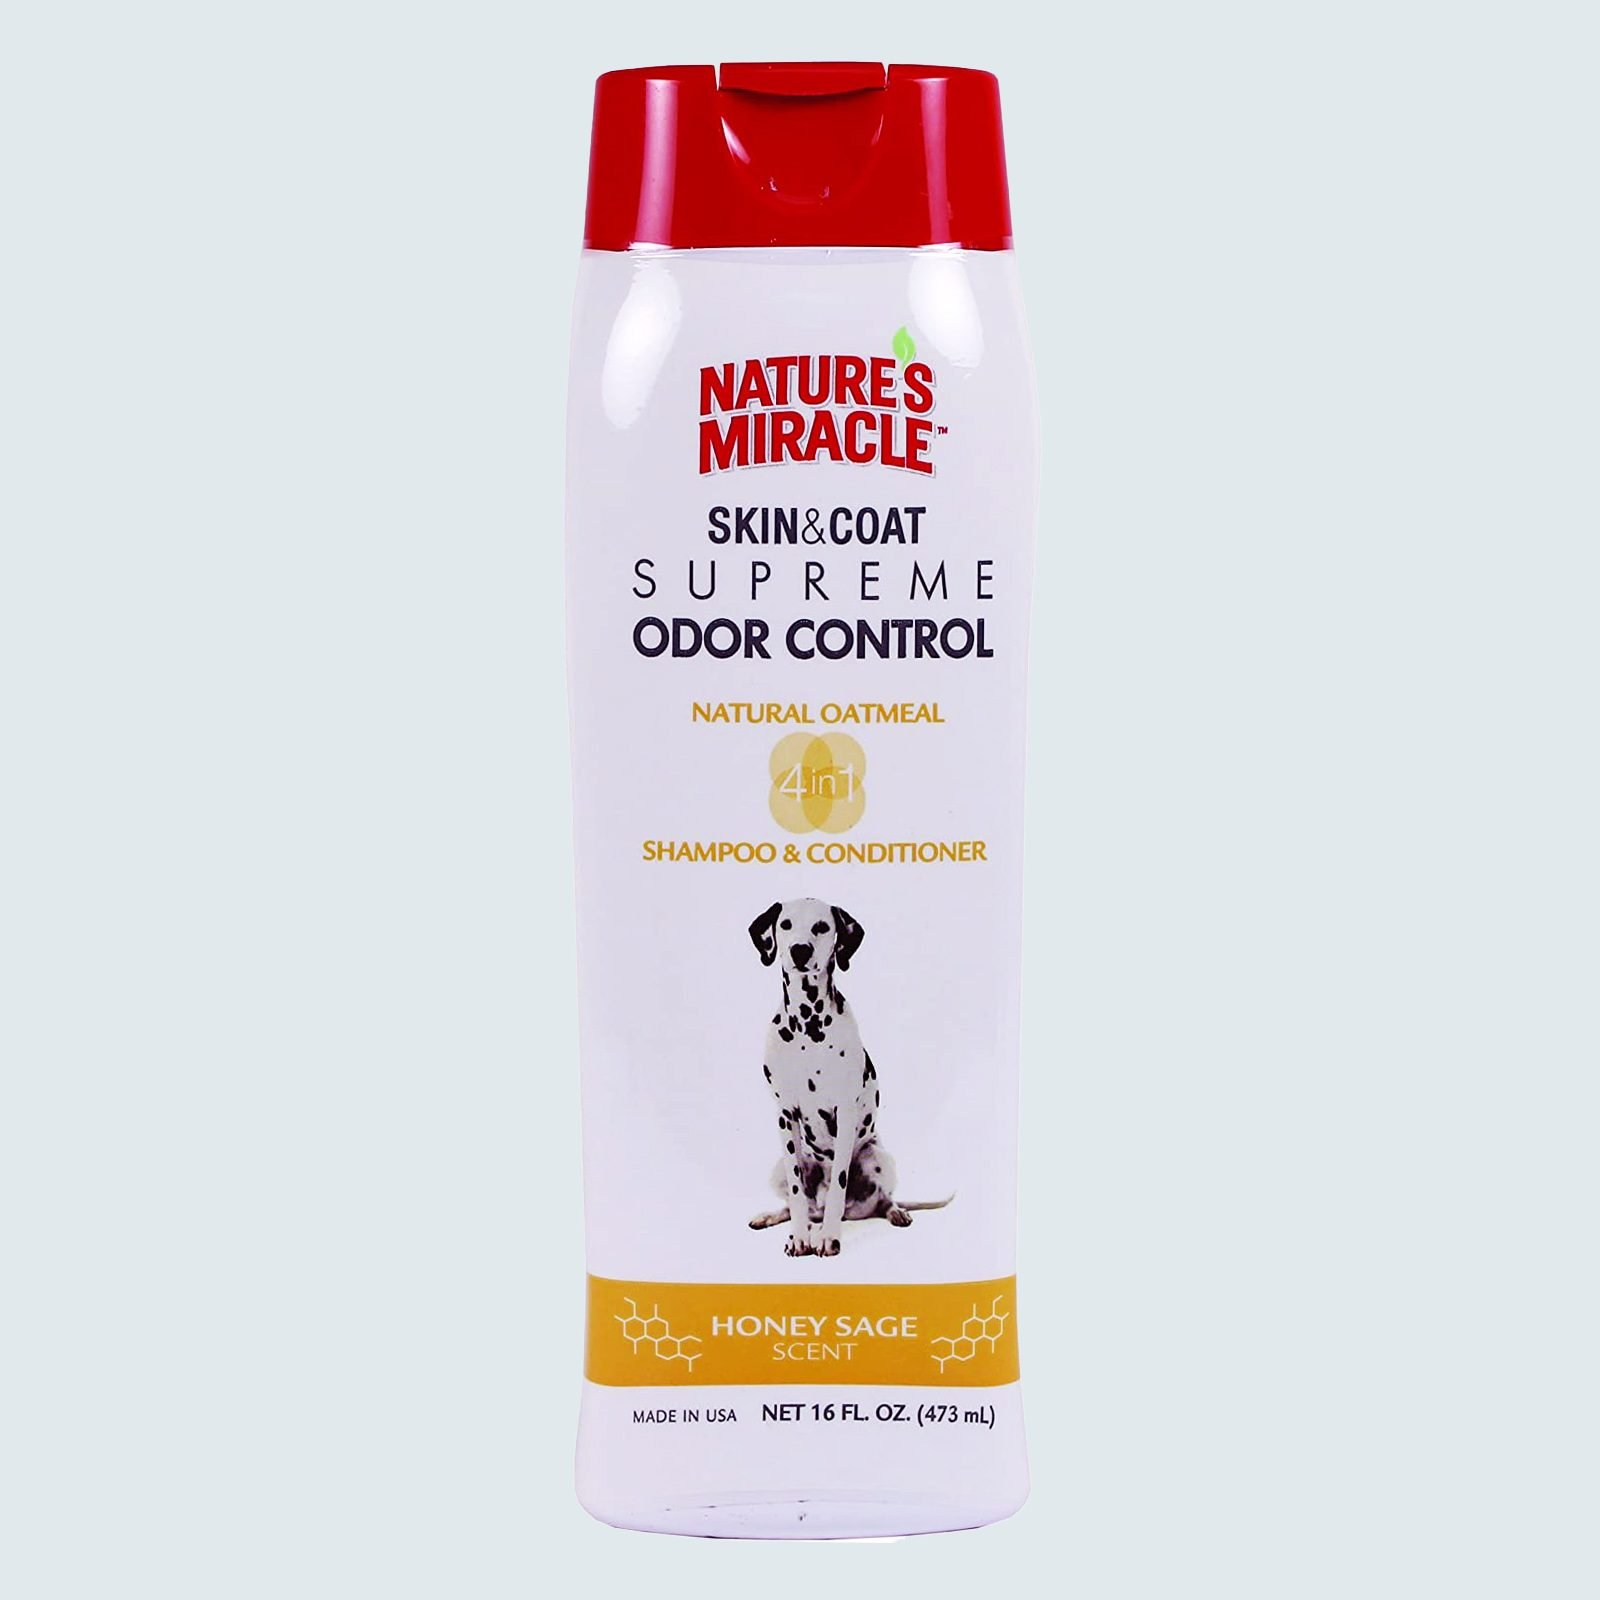 Nature's Miracle Supreme Odor Control Oatmeal Dog Shampoo & Conditioner